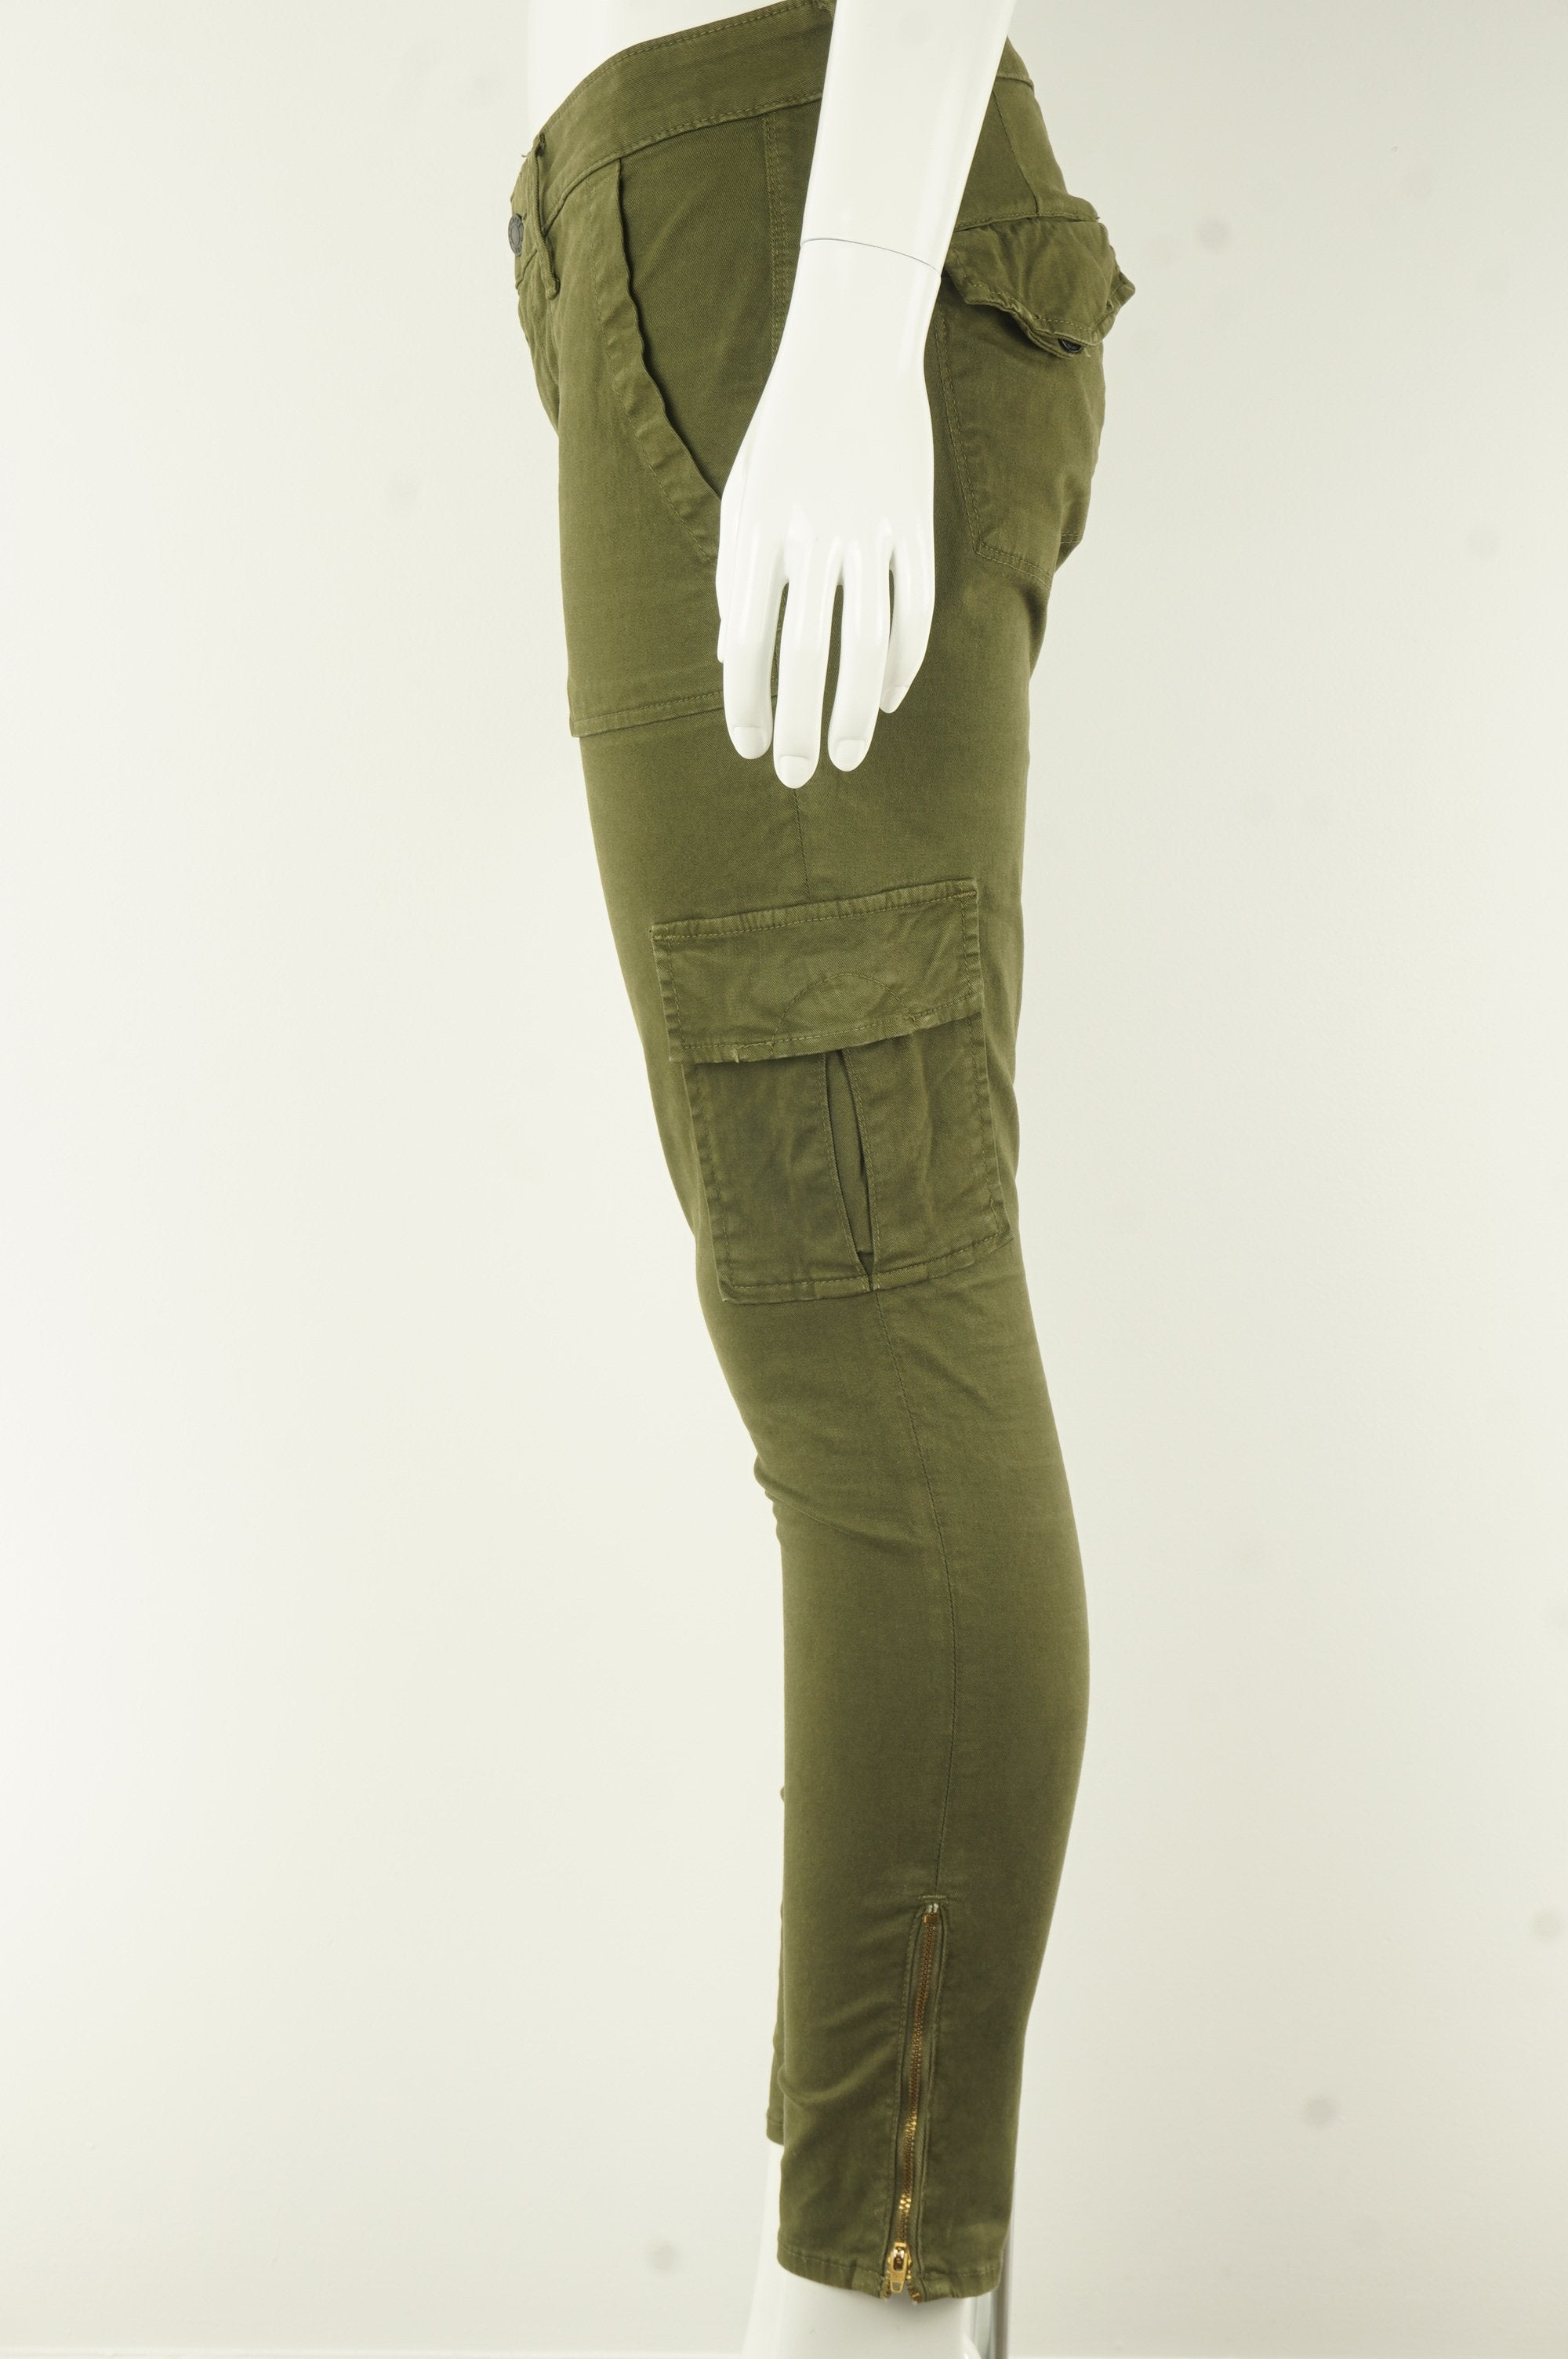 Paradise Mine Army Green Skinny Stretchy Jeans, The cool kinda pair of jeans with lots of pockets. , Green, 97% Cotton, 3% Spandex, women's Pants & Shorts, women's Green Pants & Shorts, Paradise Mine women's Pants & Shorts, women's denim, aritzia women's green jeans/denim